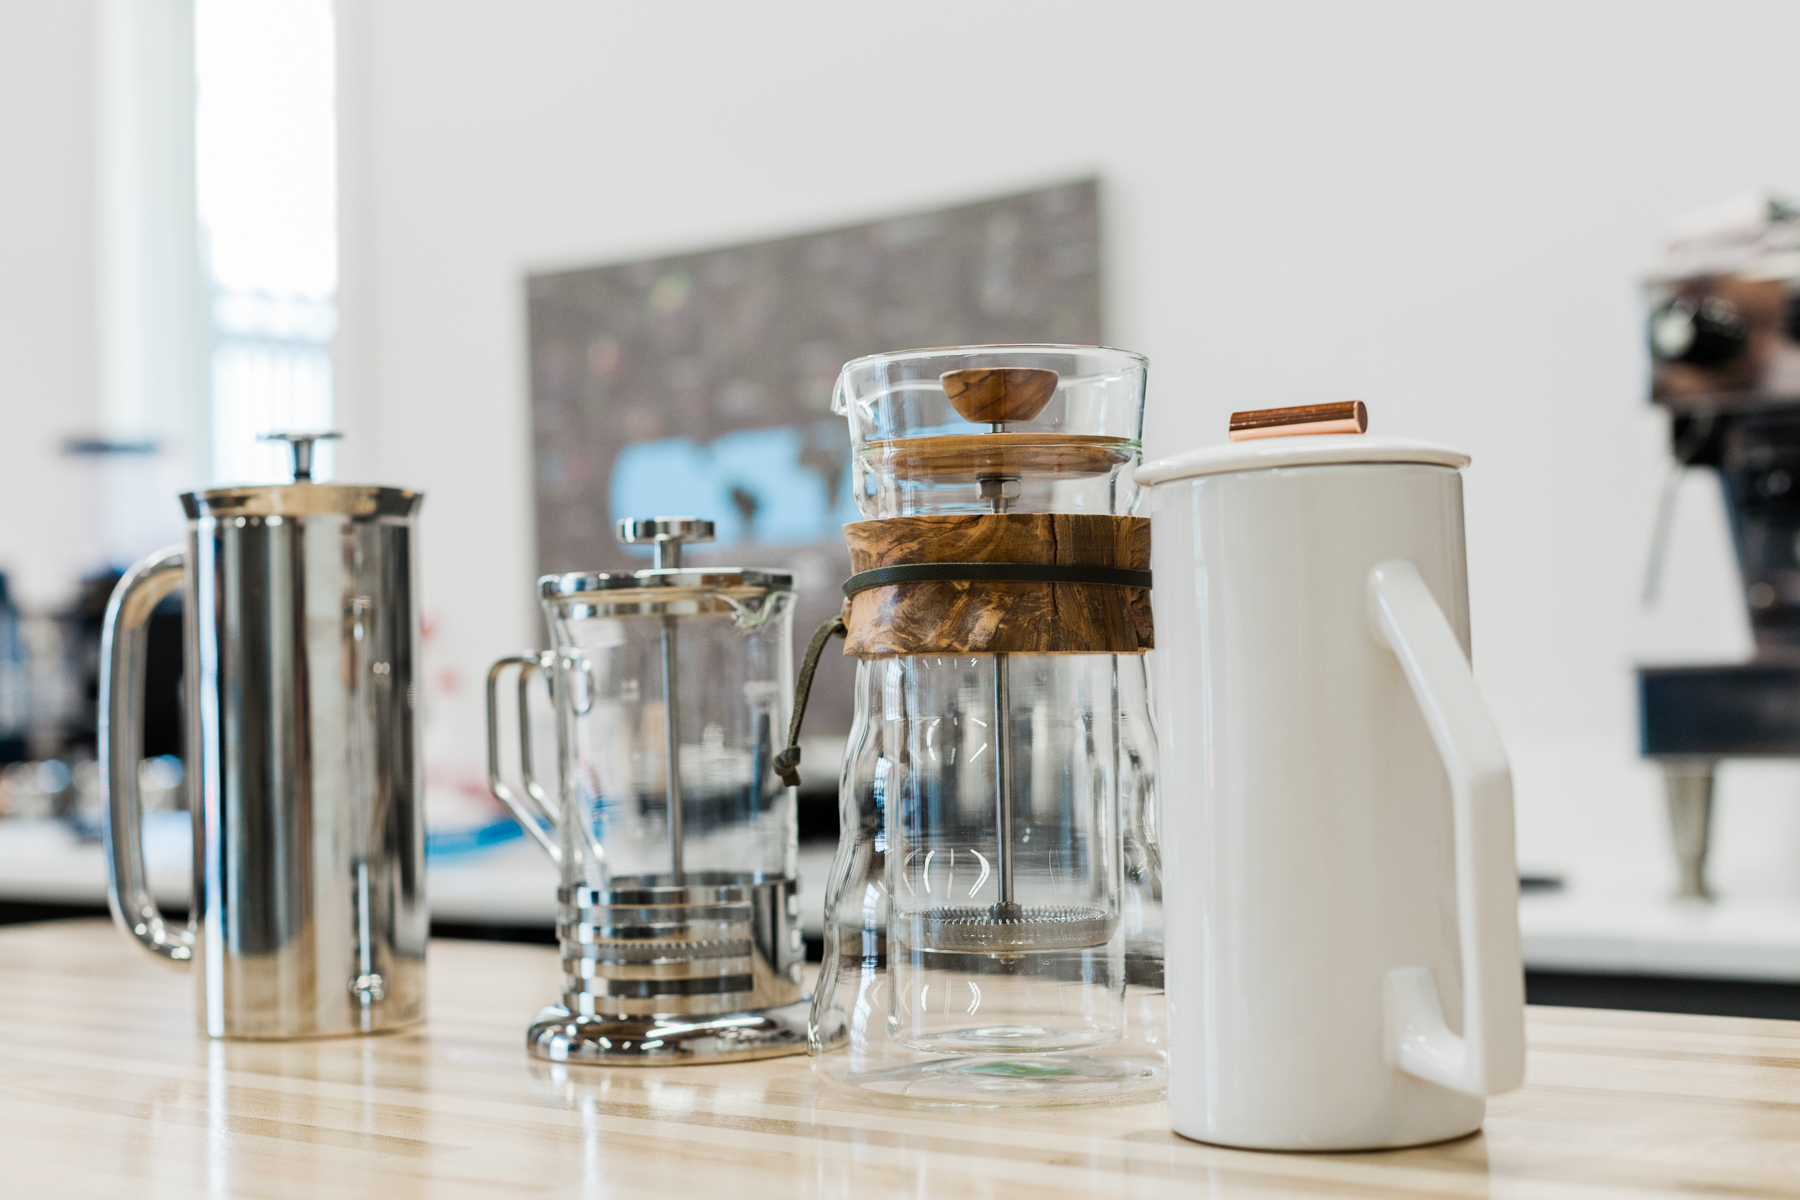 A double-walled stainless steel Espro press, a single-walled glass Hario French press, a double-walled glass Hario French press, and a single-walled white ceramic Yield Design French press.